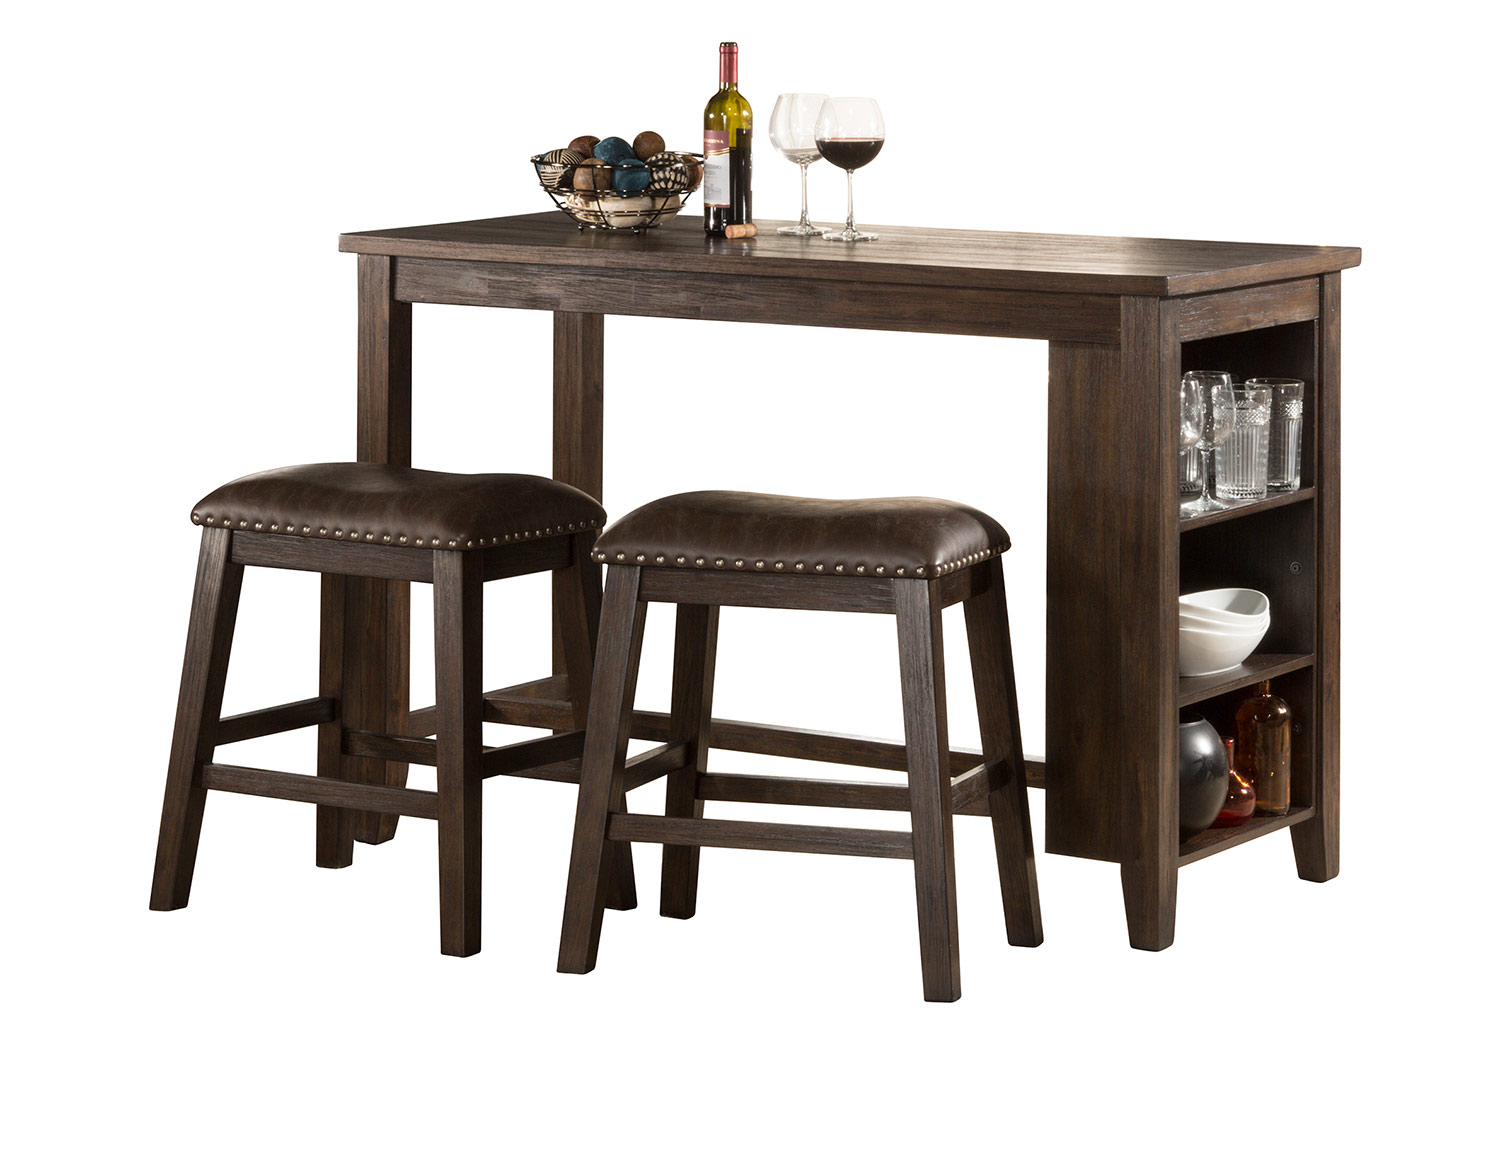 Hillsdale Spencer 3 Piece Counter Height Dining Set with Backless Counter Height Stools - Dark Espresso